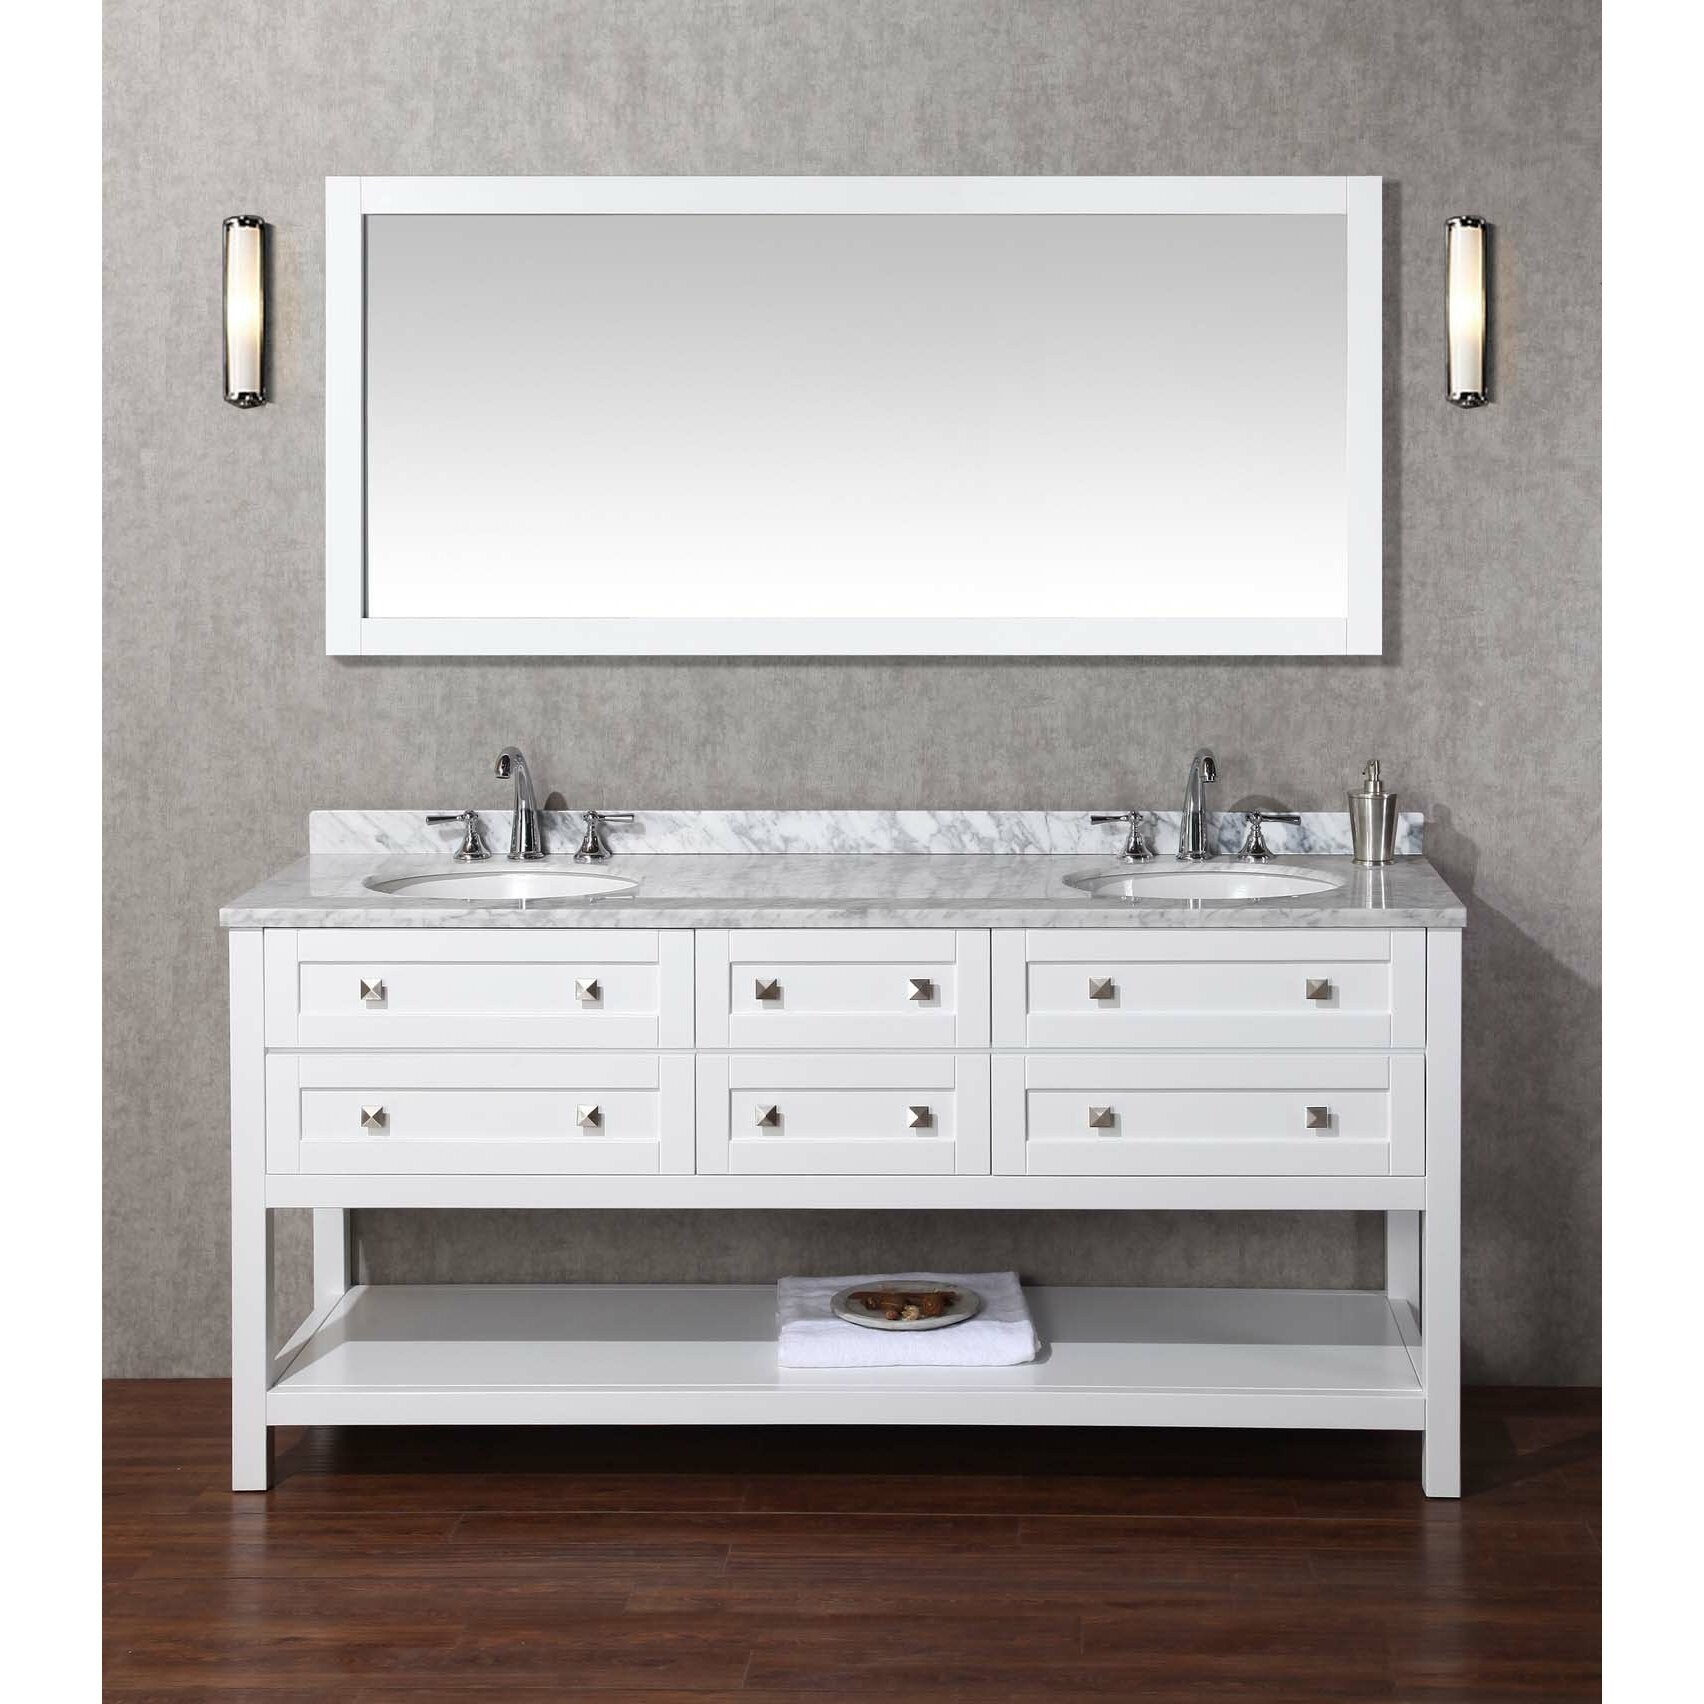 Dcor design albia 72 double bathroom vanity set with for Bathroom 72 inch vanity